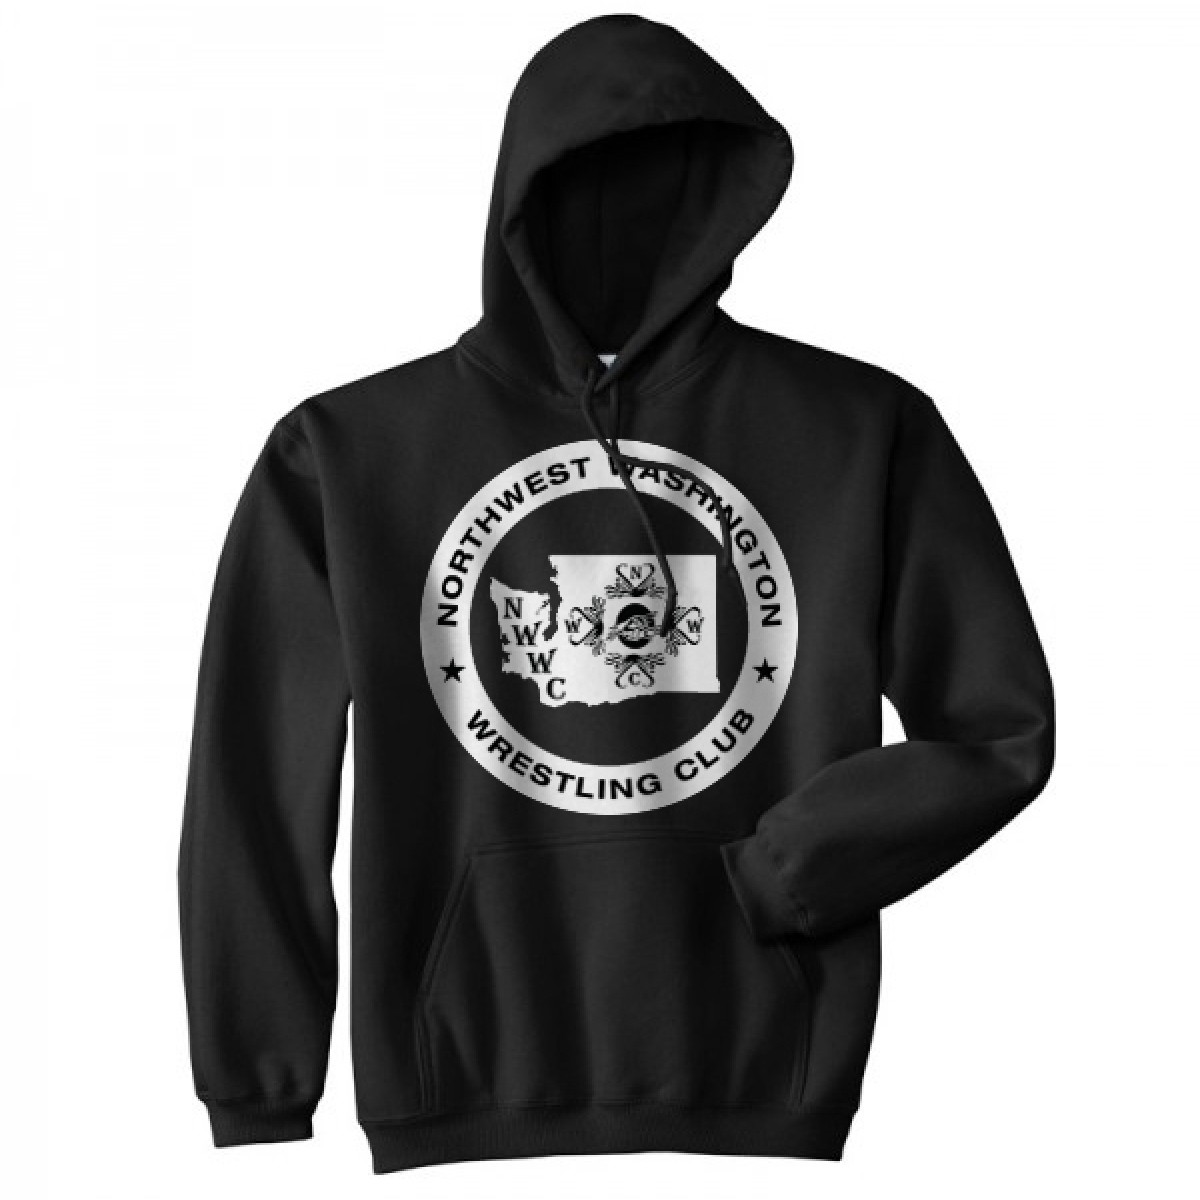 NWWC black hoodie with the logo in white.-Black-L